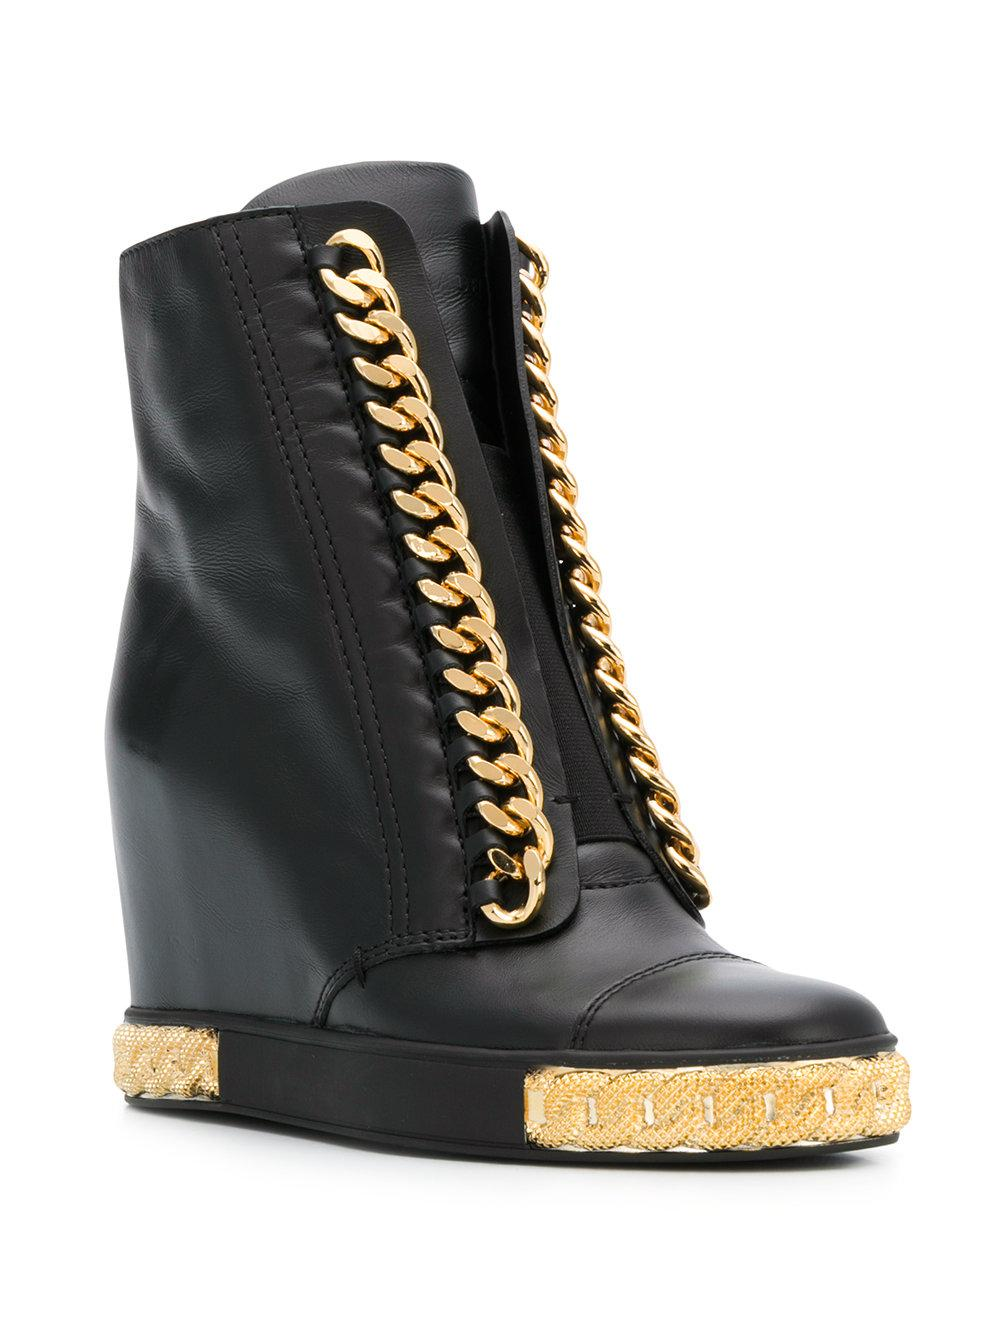 e24f0006541 Casadei Chain Embellished Wedge Sneakers in Black - Lyst